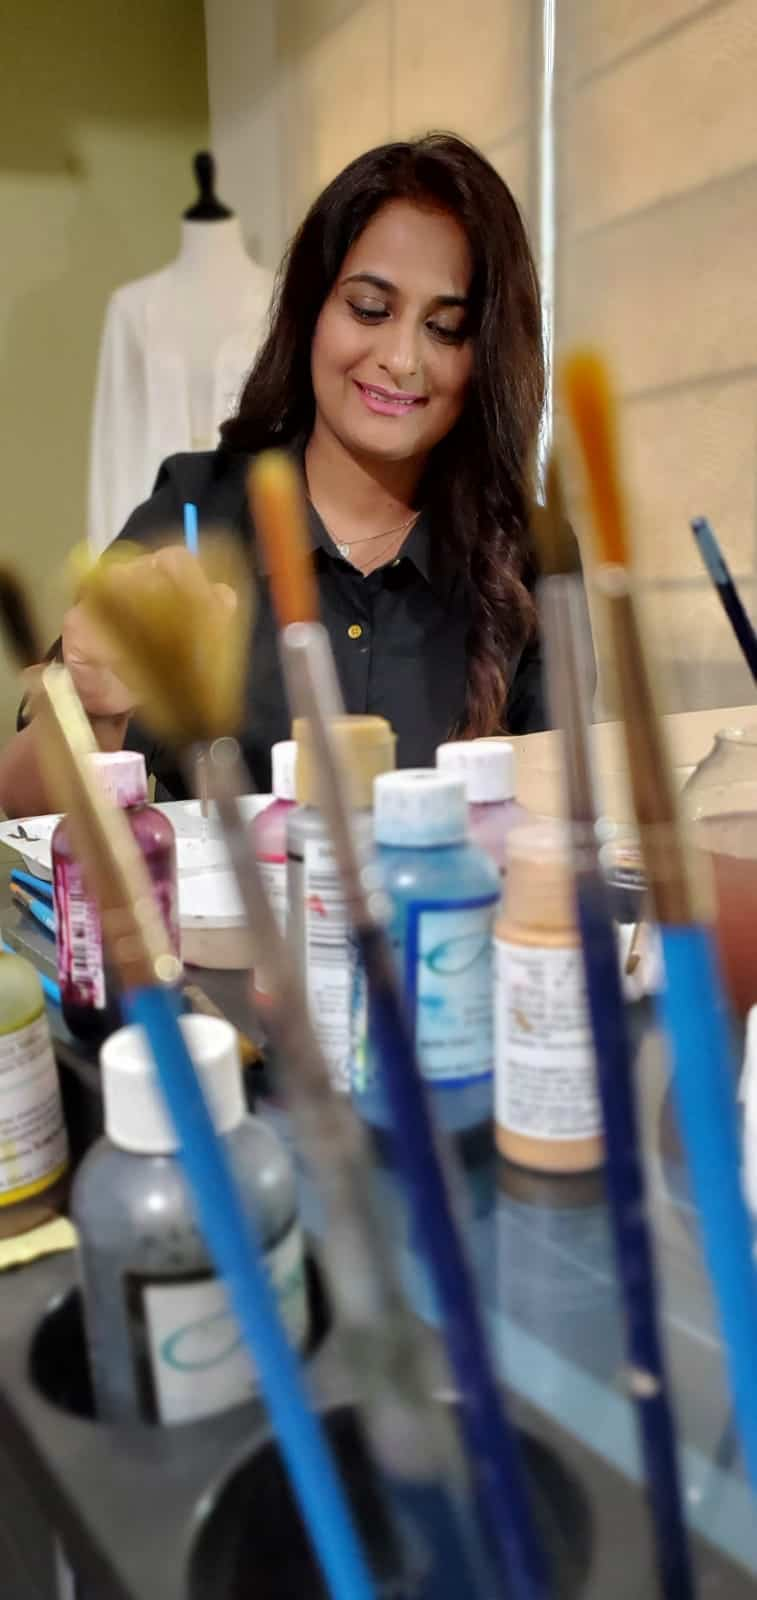 Zahra Batool of Zahra Batool Couture at work desk with paints and delicate brushes